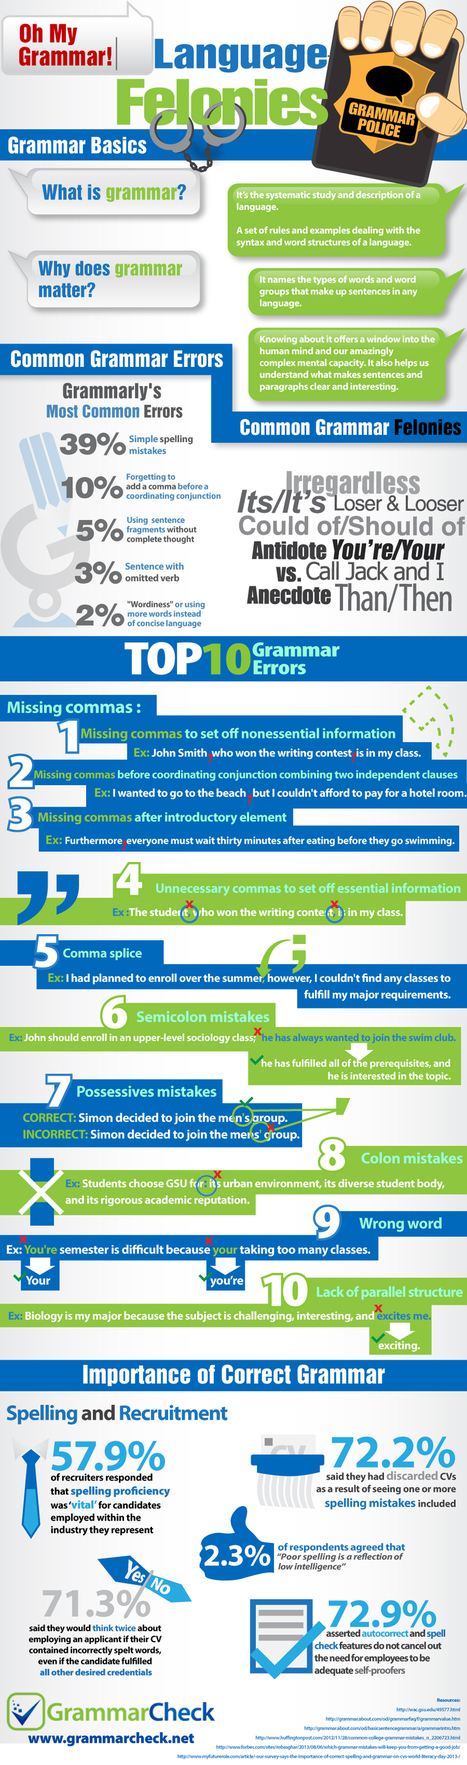 Oh My Grammar!  Language Felonies: Top 10 Grammar Errors, Common Mistakes, and the Importance of Correct Grammar (Infographic) | Social media and education | Scoop.it